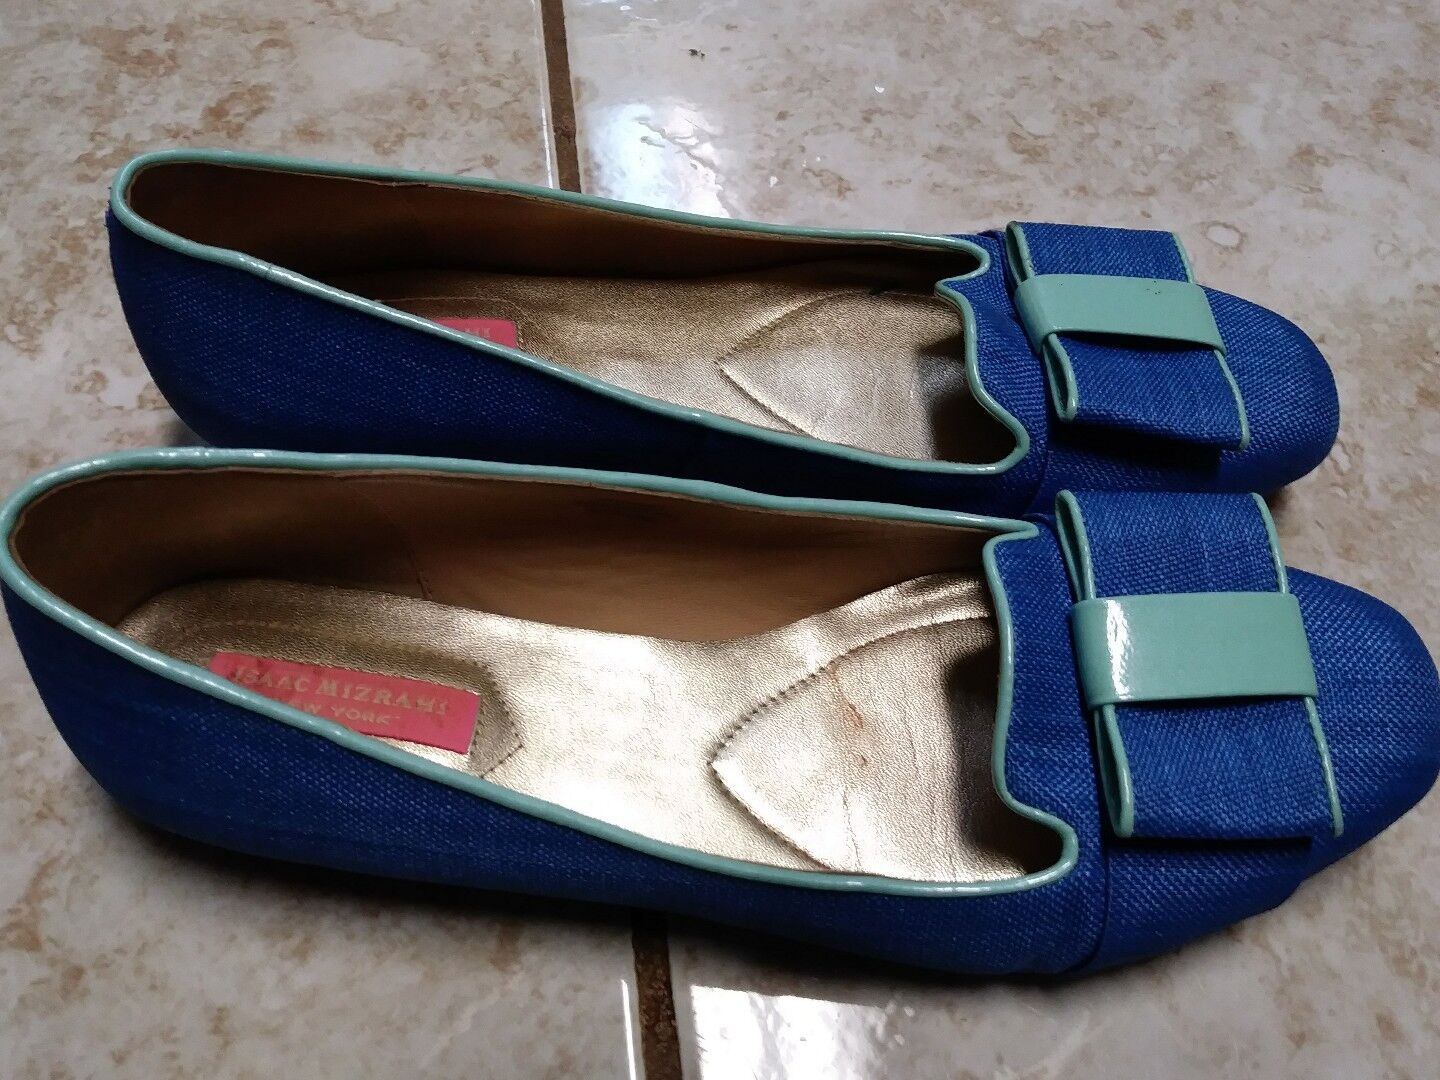 Isaac Mizrahi Mizrahi Isaac KATHARINE 3 Women's Slip On Flats Shoes Blue Fabric Size 8.5 053fc0